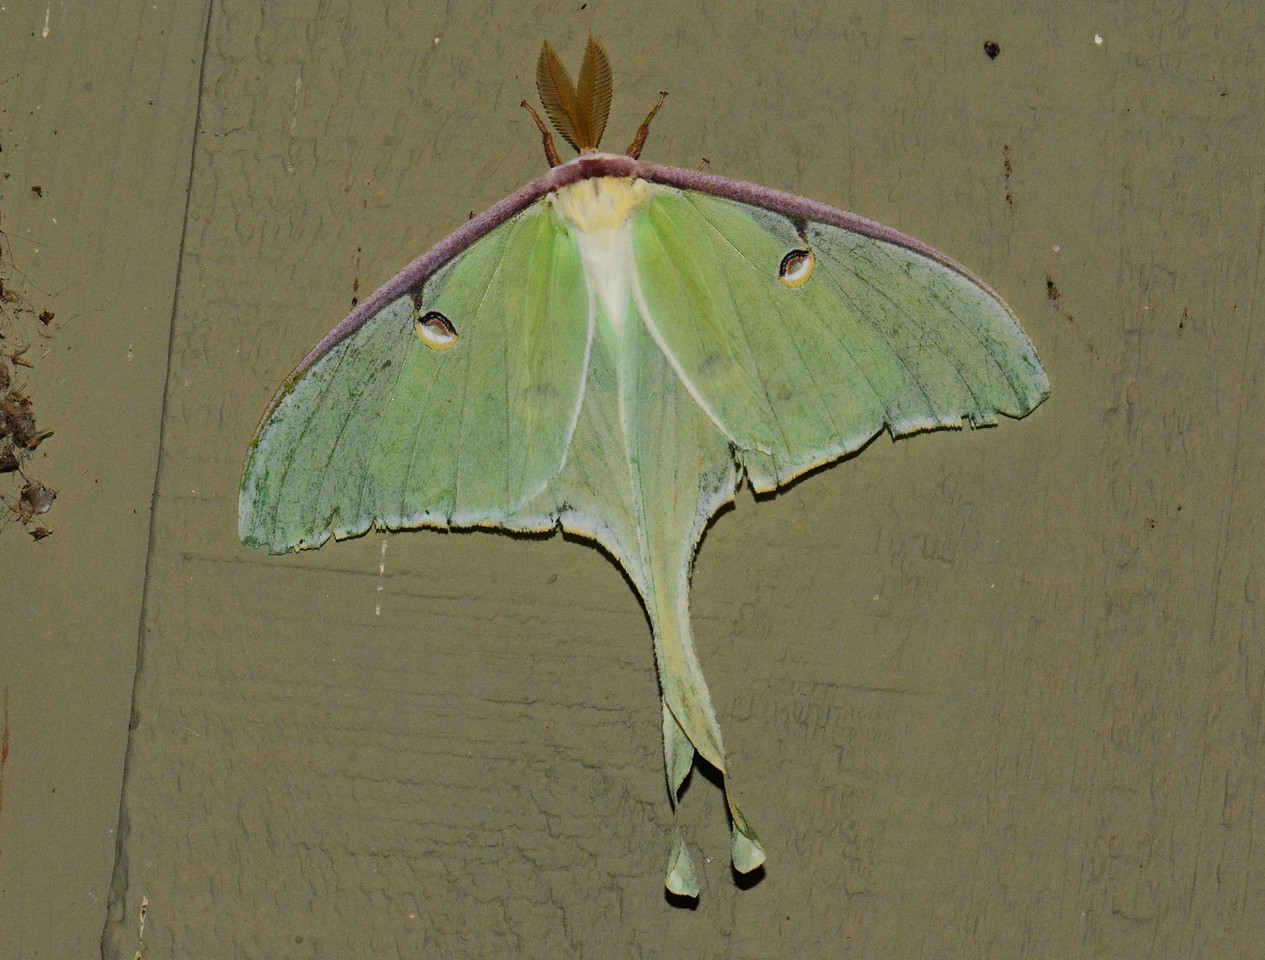 "Luna Moth (f)<br /> <br /> '...So slowly the great hot elephant hearts<br /> grow full of desire,<br /> and the great beasts mate in secret at last,<br /> hiding their fire.<br /> <br /> Oldest they are and the wisest of beasts<br /> so they know at last<br /> how to wait for the loneliest of feasts<br /> for the full repast.<br /> <br /> They do not snatch, they do not tear;<br /> their massive blood<br /> moves as the moon-tides, near, more near<br /> till they touch in flood.' ~ ""The Elephant is Slow to Mate"" by David Herbert Lawrence"